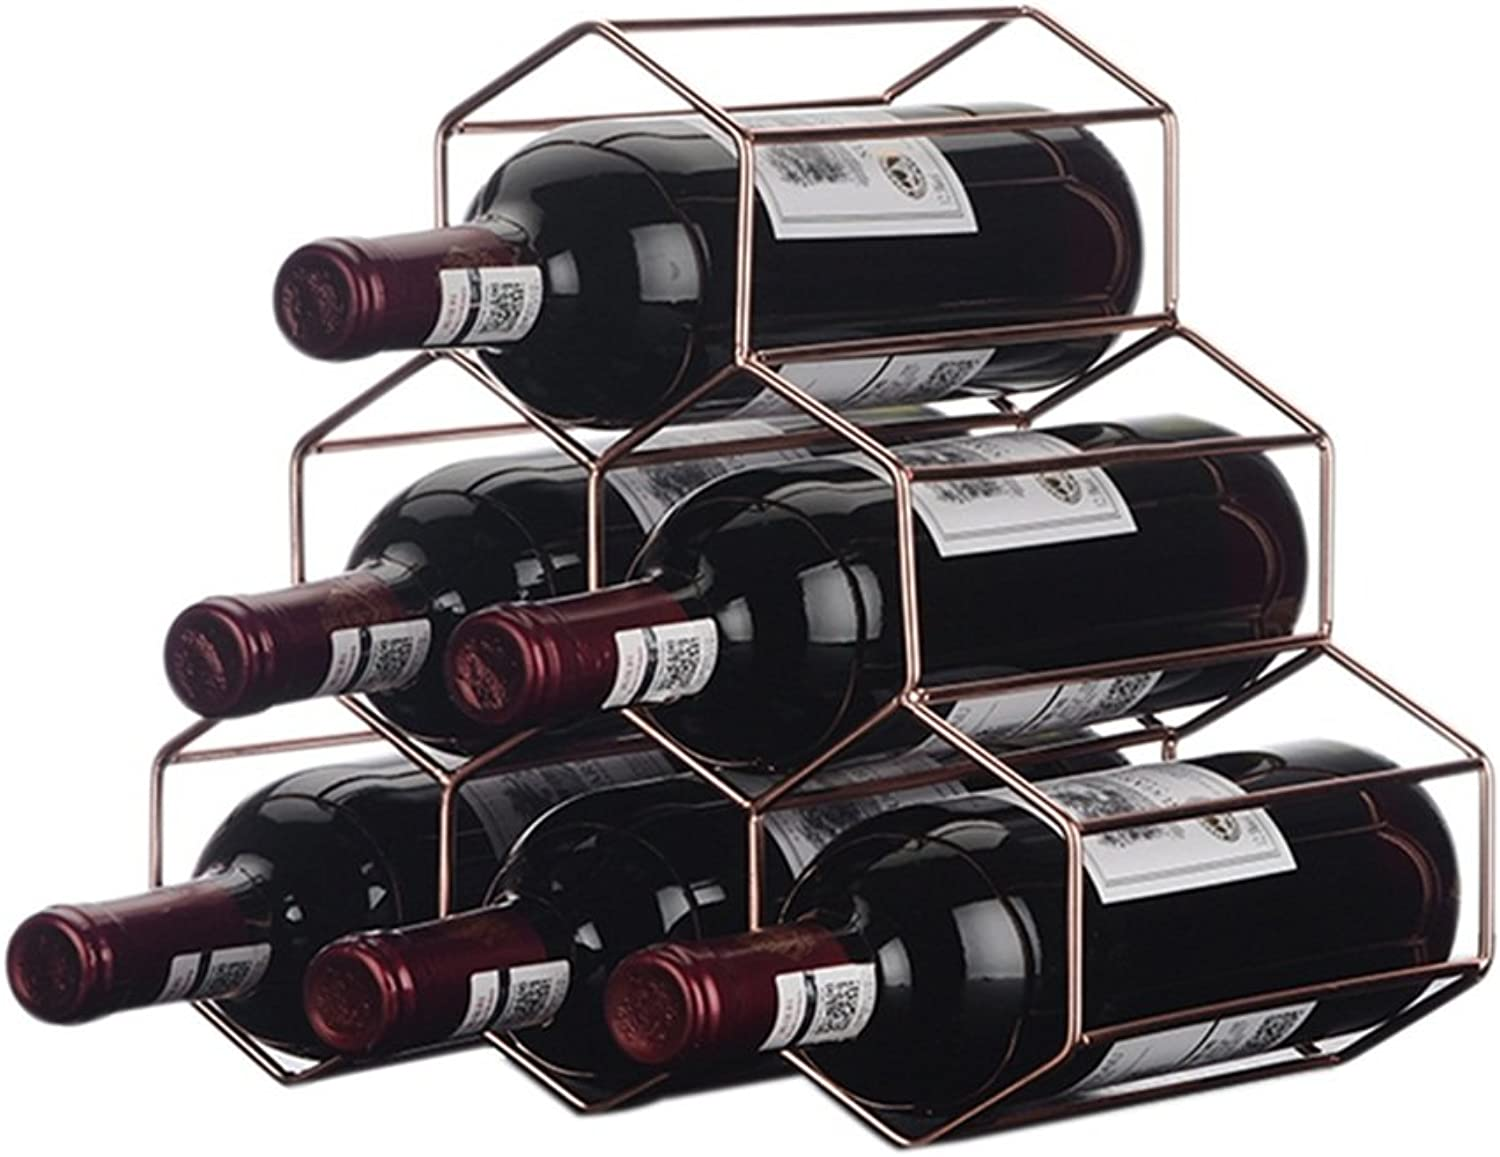 Shelf Wine Rack Freestanding Table Metal Iron Wine Bottle Rack   Shelf Hanging 6 Wine Bottles Stacking Wine Rack Stand Cabinet Bottle Holder Storage Stand Organiser Countertop for Restaurant,Home,Bar